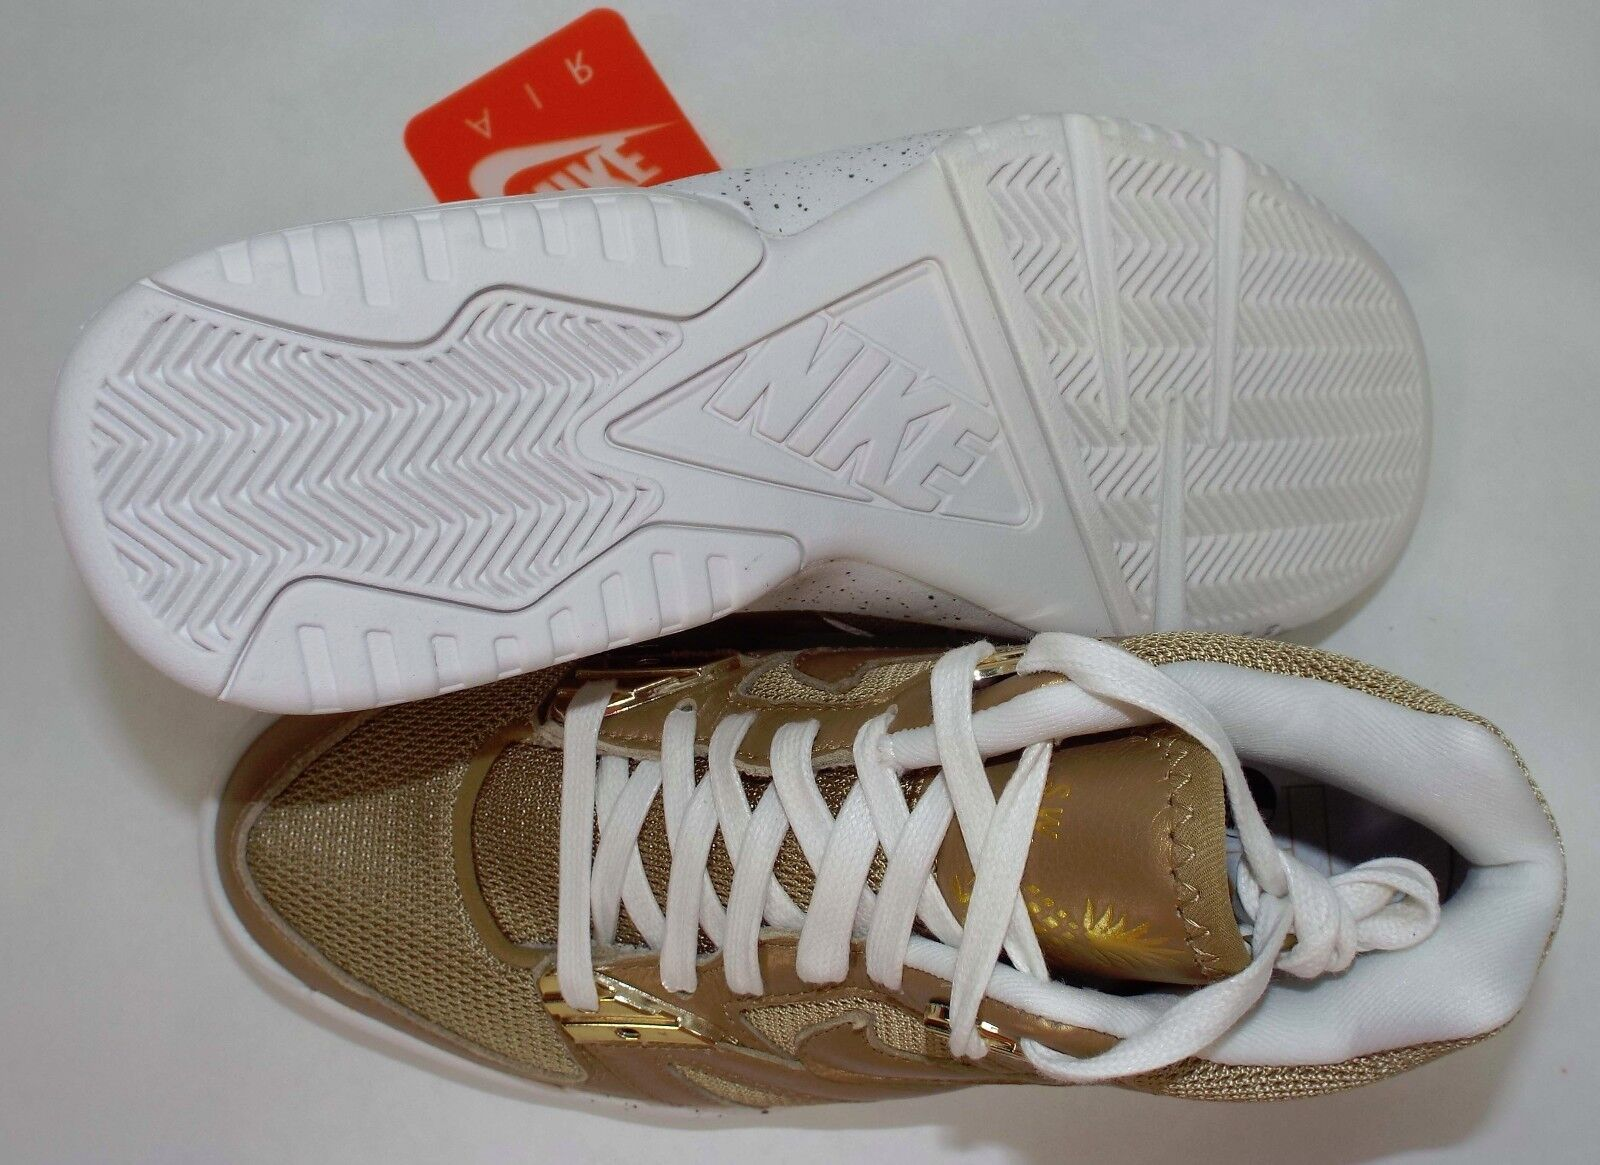 New homme 9 NIKE Air Gold Tech Challenge III 3 Gold Air blanc chaussures 150 749957-701 b29780